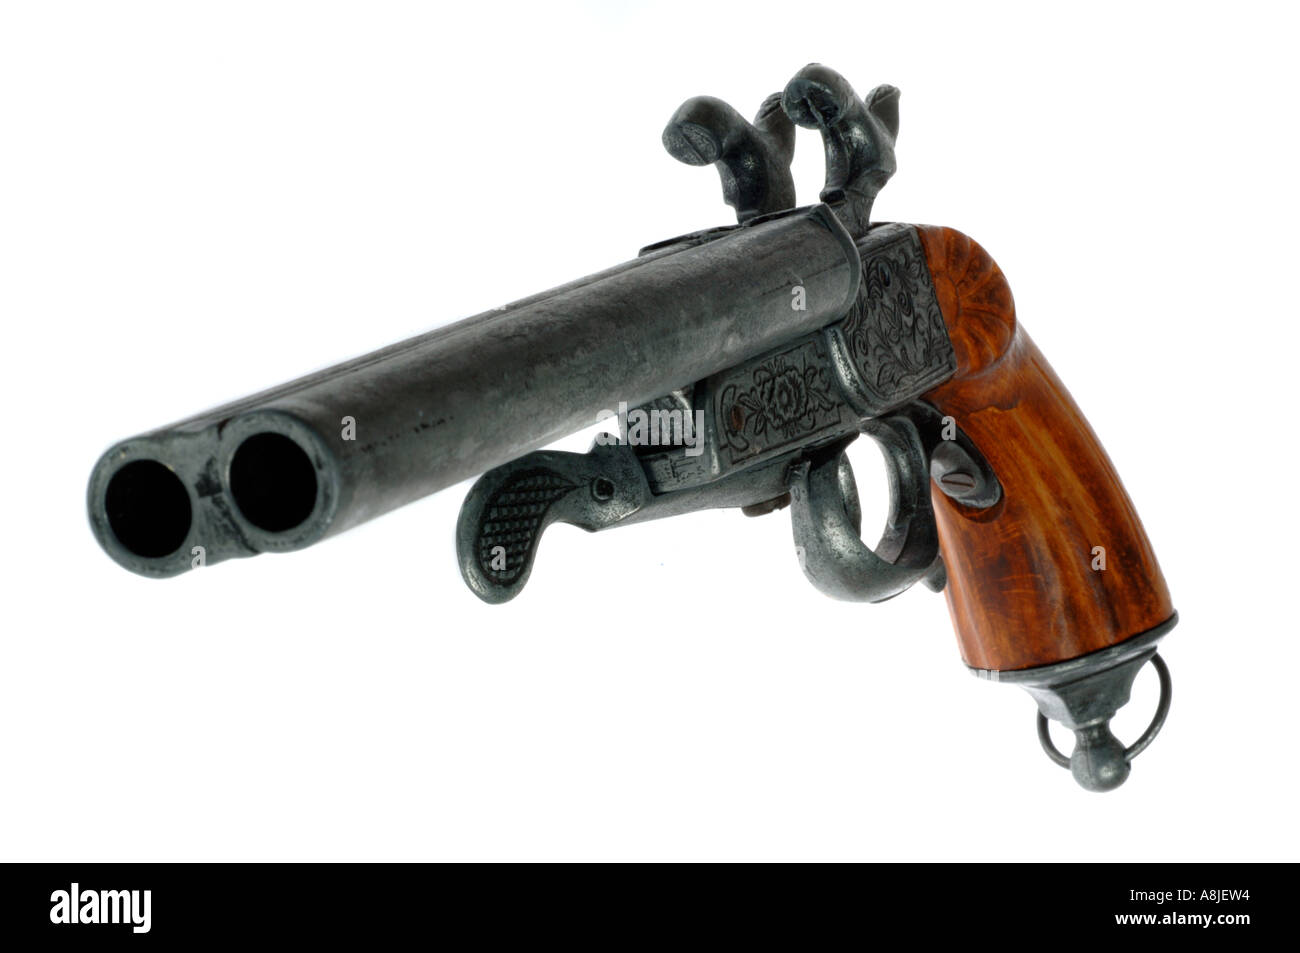 Antique gun pistol - Stock Image